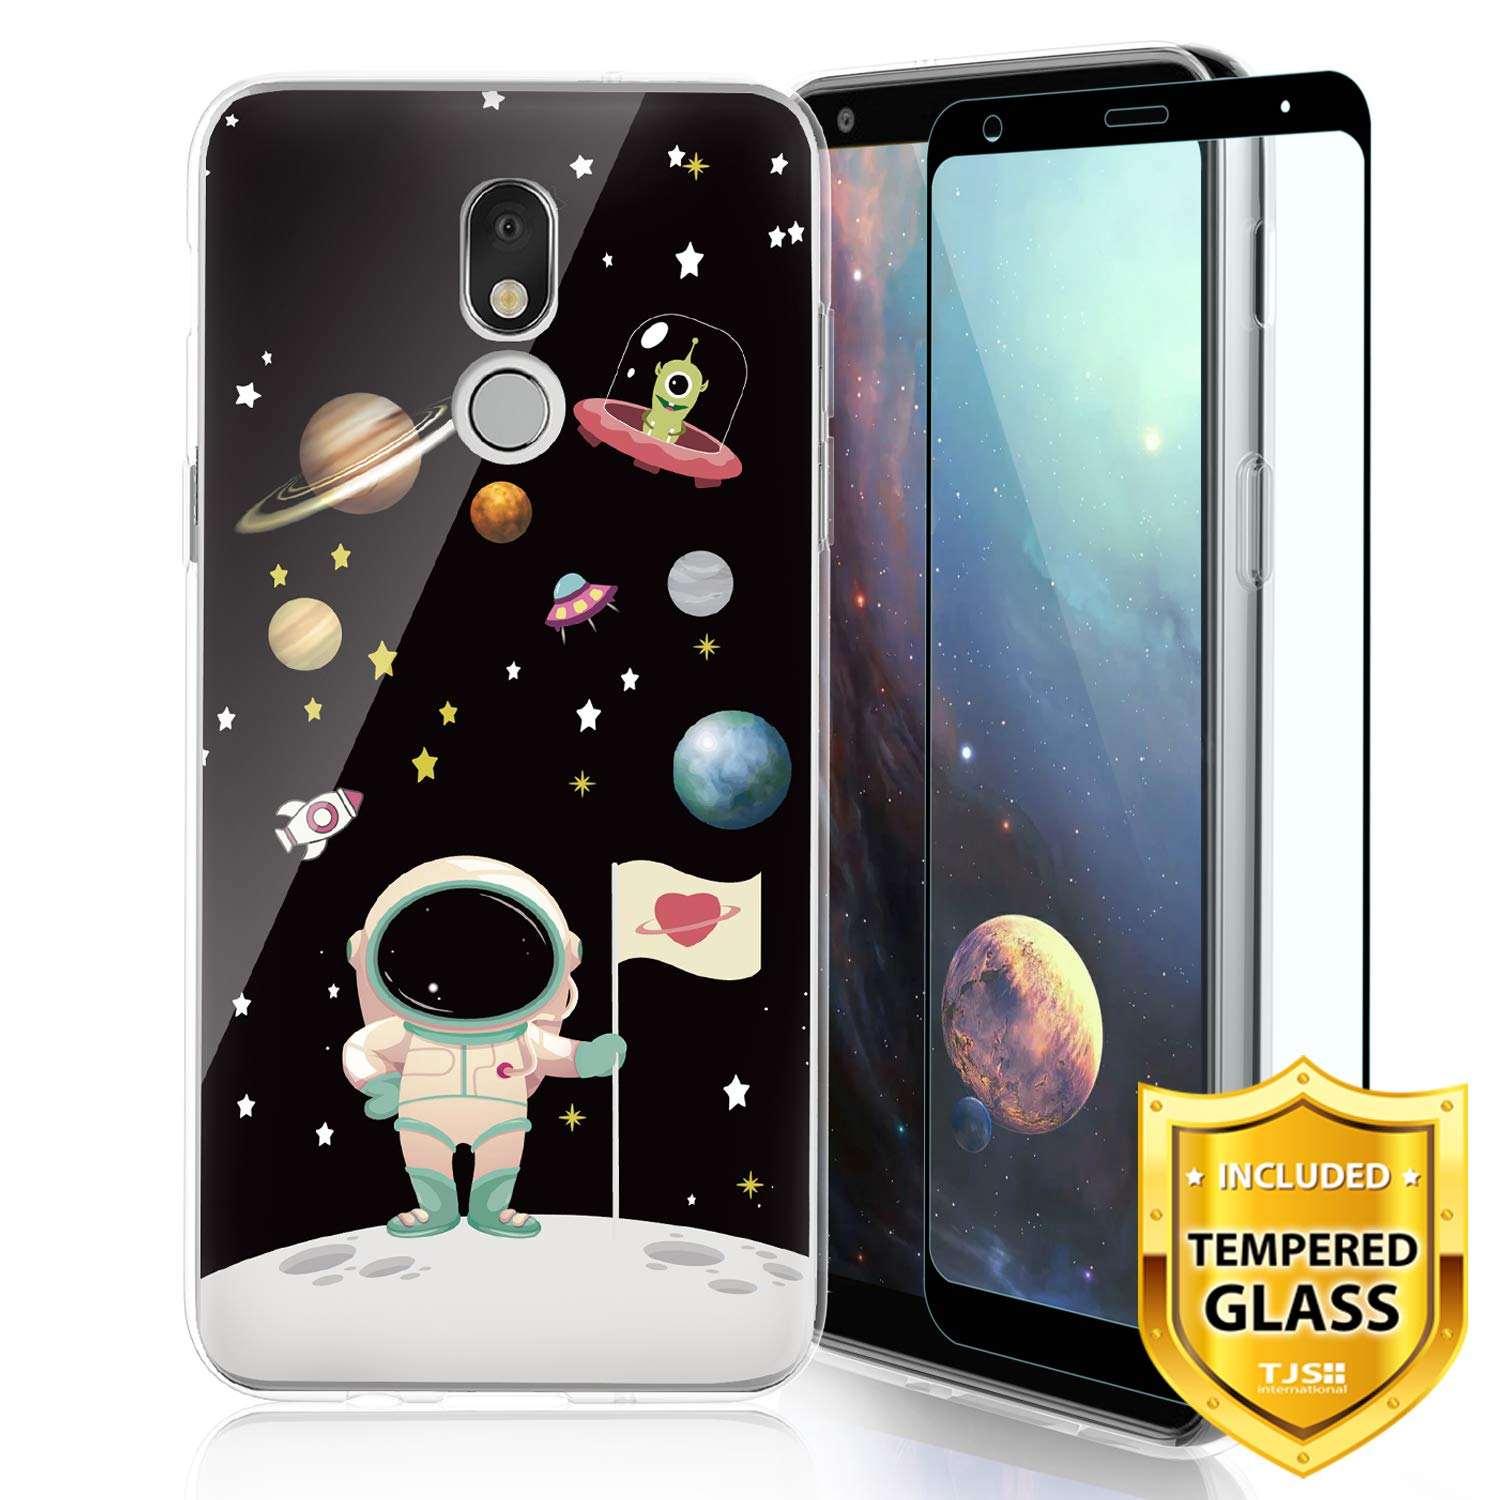 TJS Phone Case for LG Aristo 4 Plus X320/LG X2 2019/LG K30 2019, with [Full Coverage Tempered Glass Screen Protector] Ultra Thin Slim TPU Matte Color Design Transparent Clear Soft Skin (Astronaut)